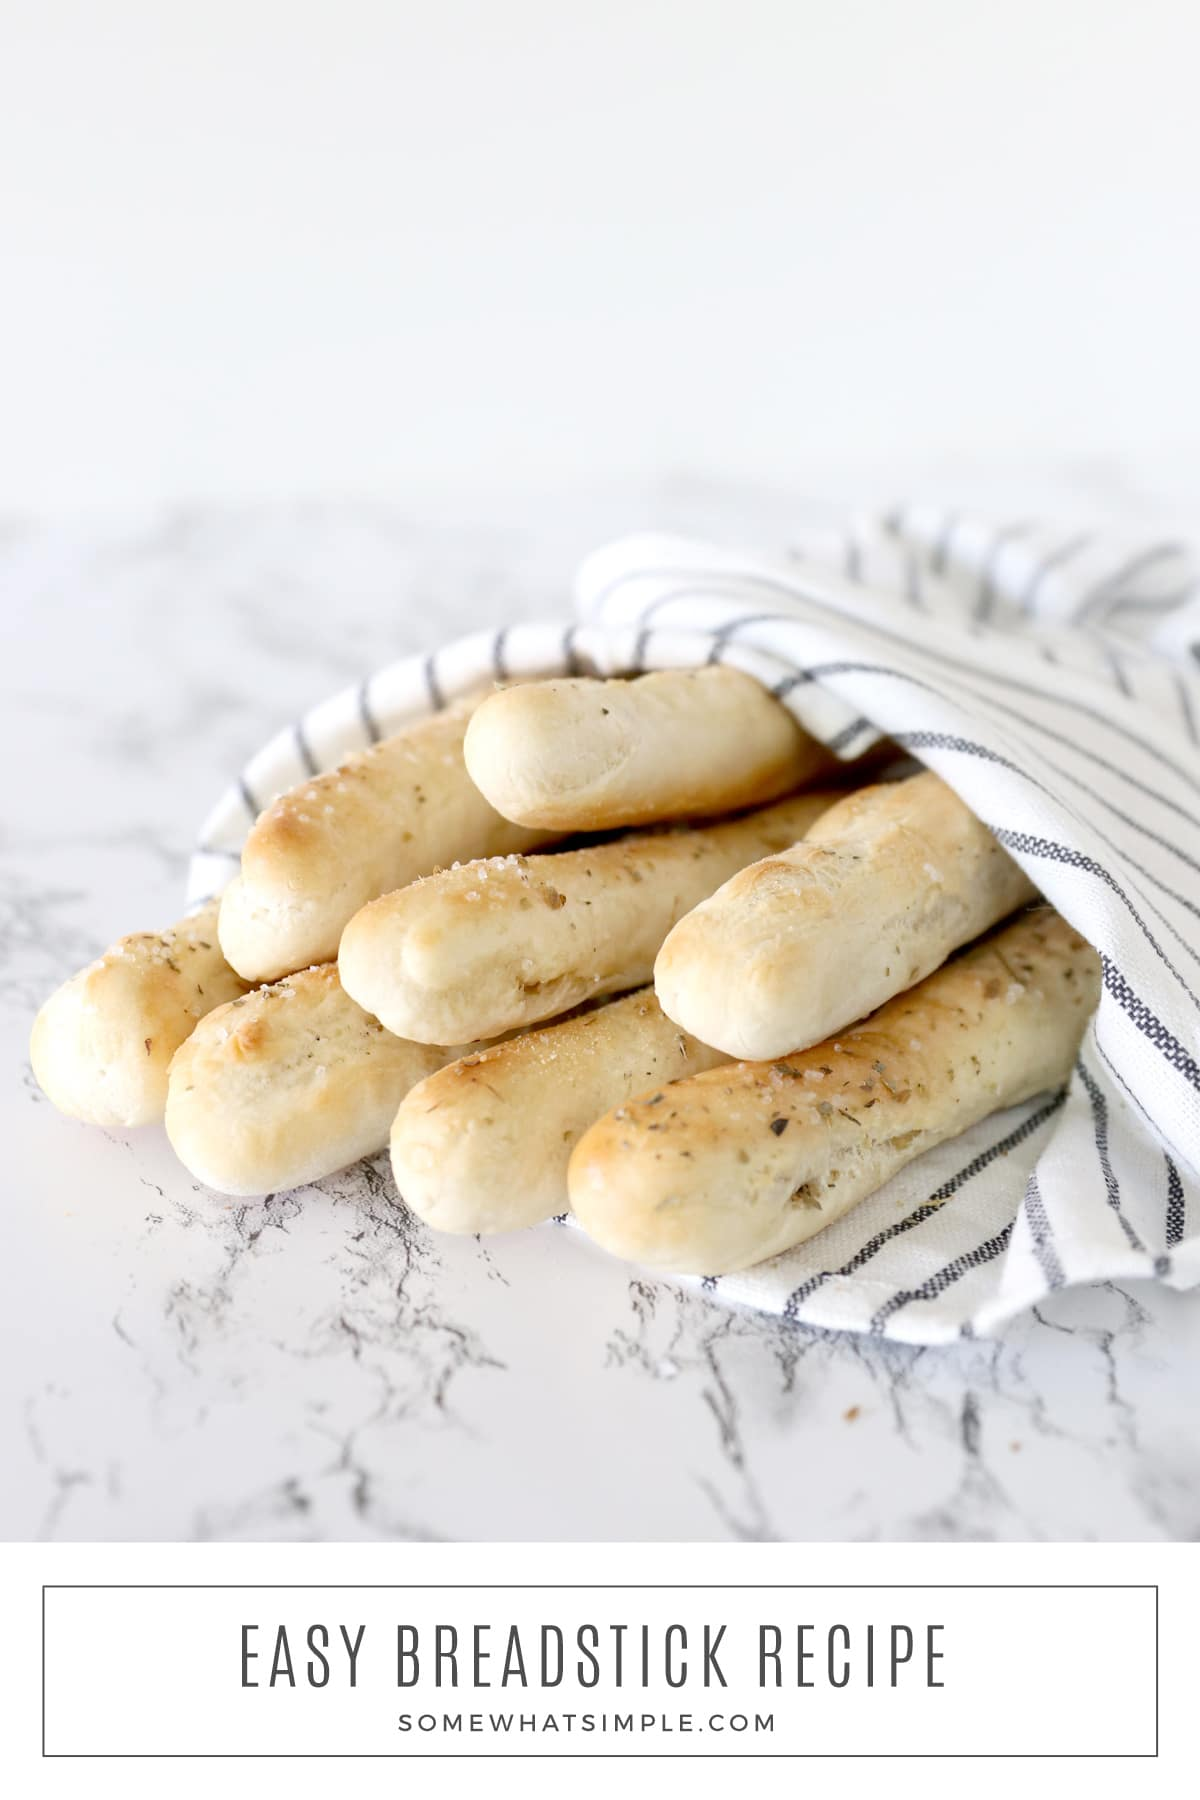 Soft homemade breadsticks are made with just 5 ingredients and take less than 20 minutes to make! They're super simple and totally delicious! via @somewhatsimple